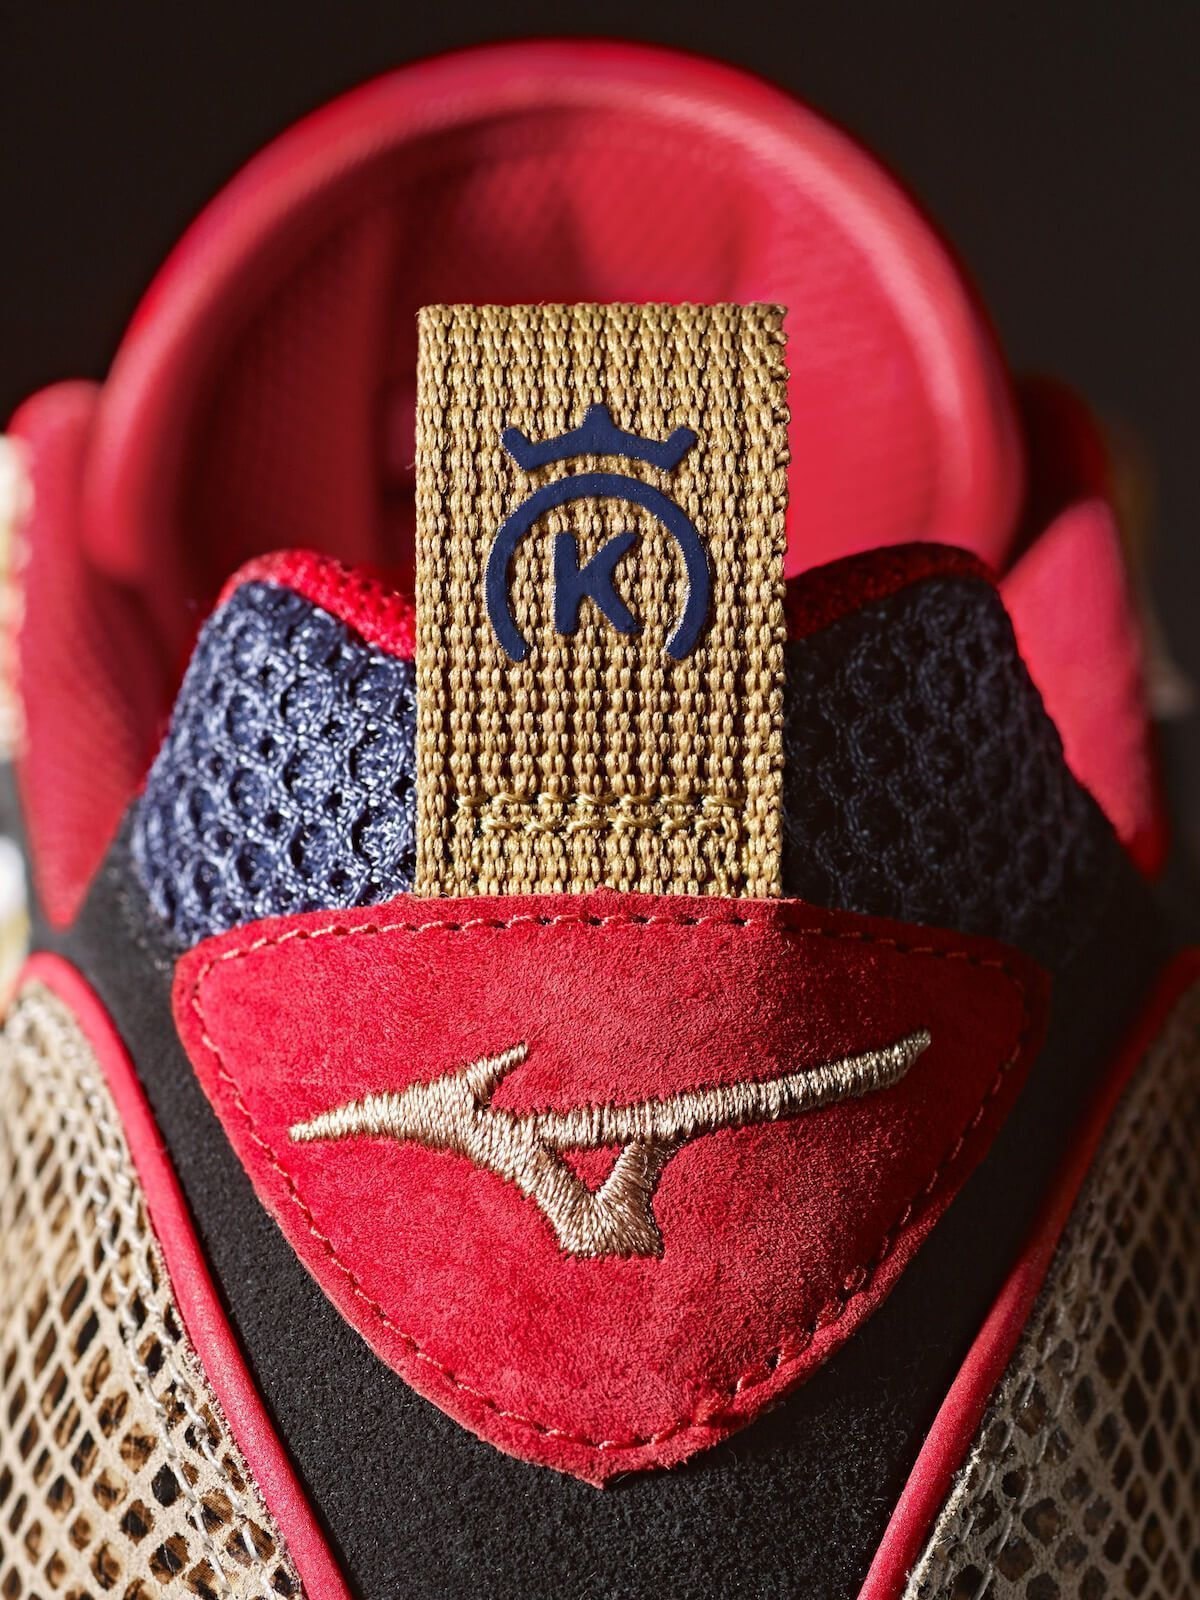 6a5753773de9 The combination of taste in design added to the boom of the Wave Rider 1 in  the market make the proposal a winning combination. The 24 Kilates x Mizuno  ...